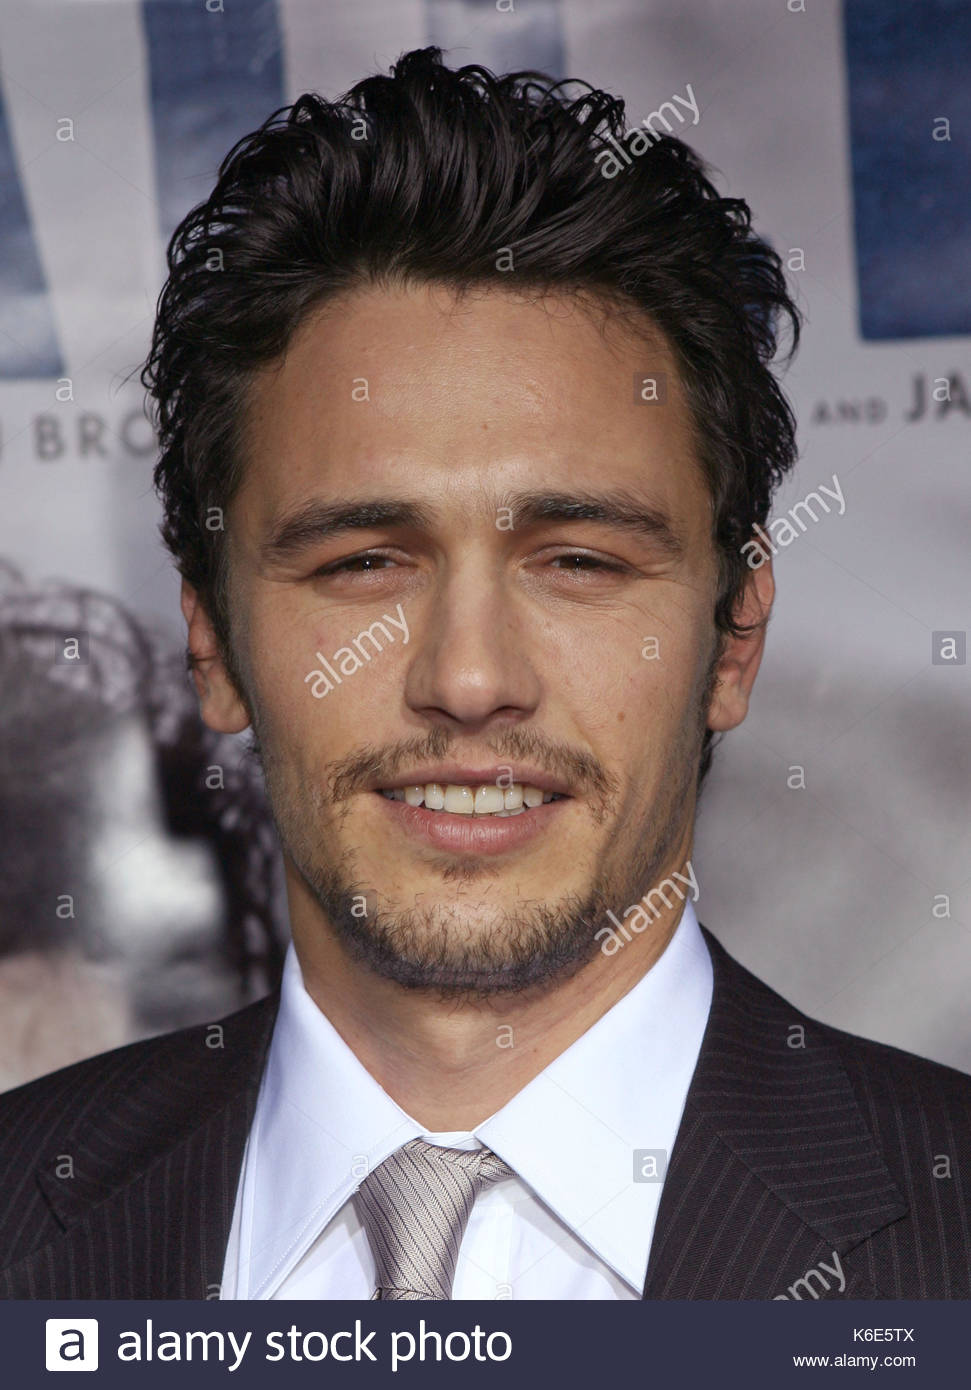 James franco art stock photos james franco art stock images alamy james franco james franco at the los angeles premiere of milk at the nvjuhfo Choice Image